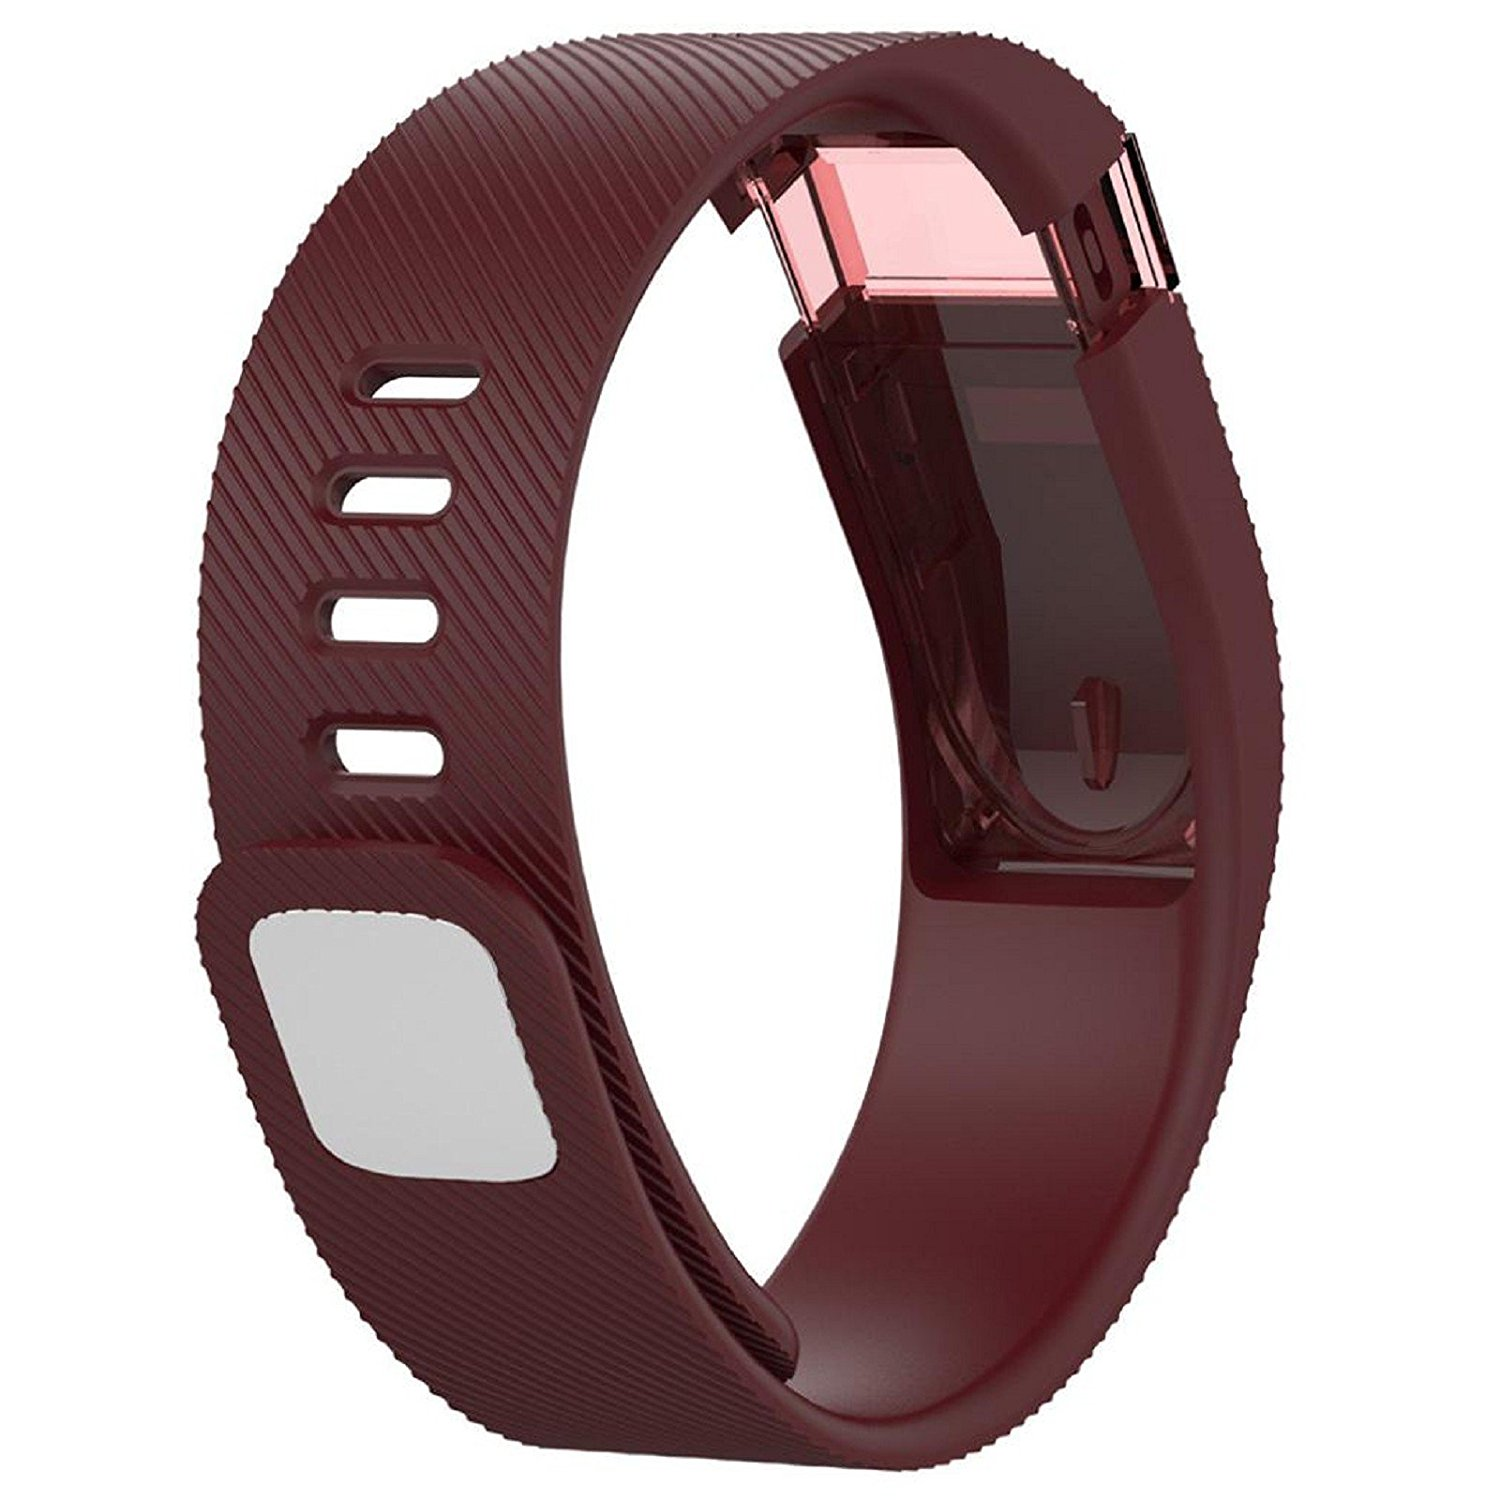 Owill Concise Soft Replacement Silicone Band Rubber Strap Wristband Bracelet For Fitbit Force (Red)